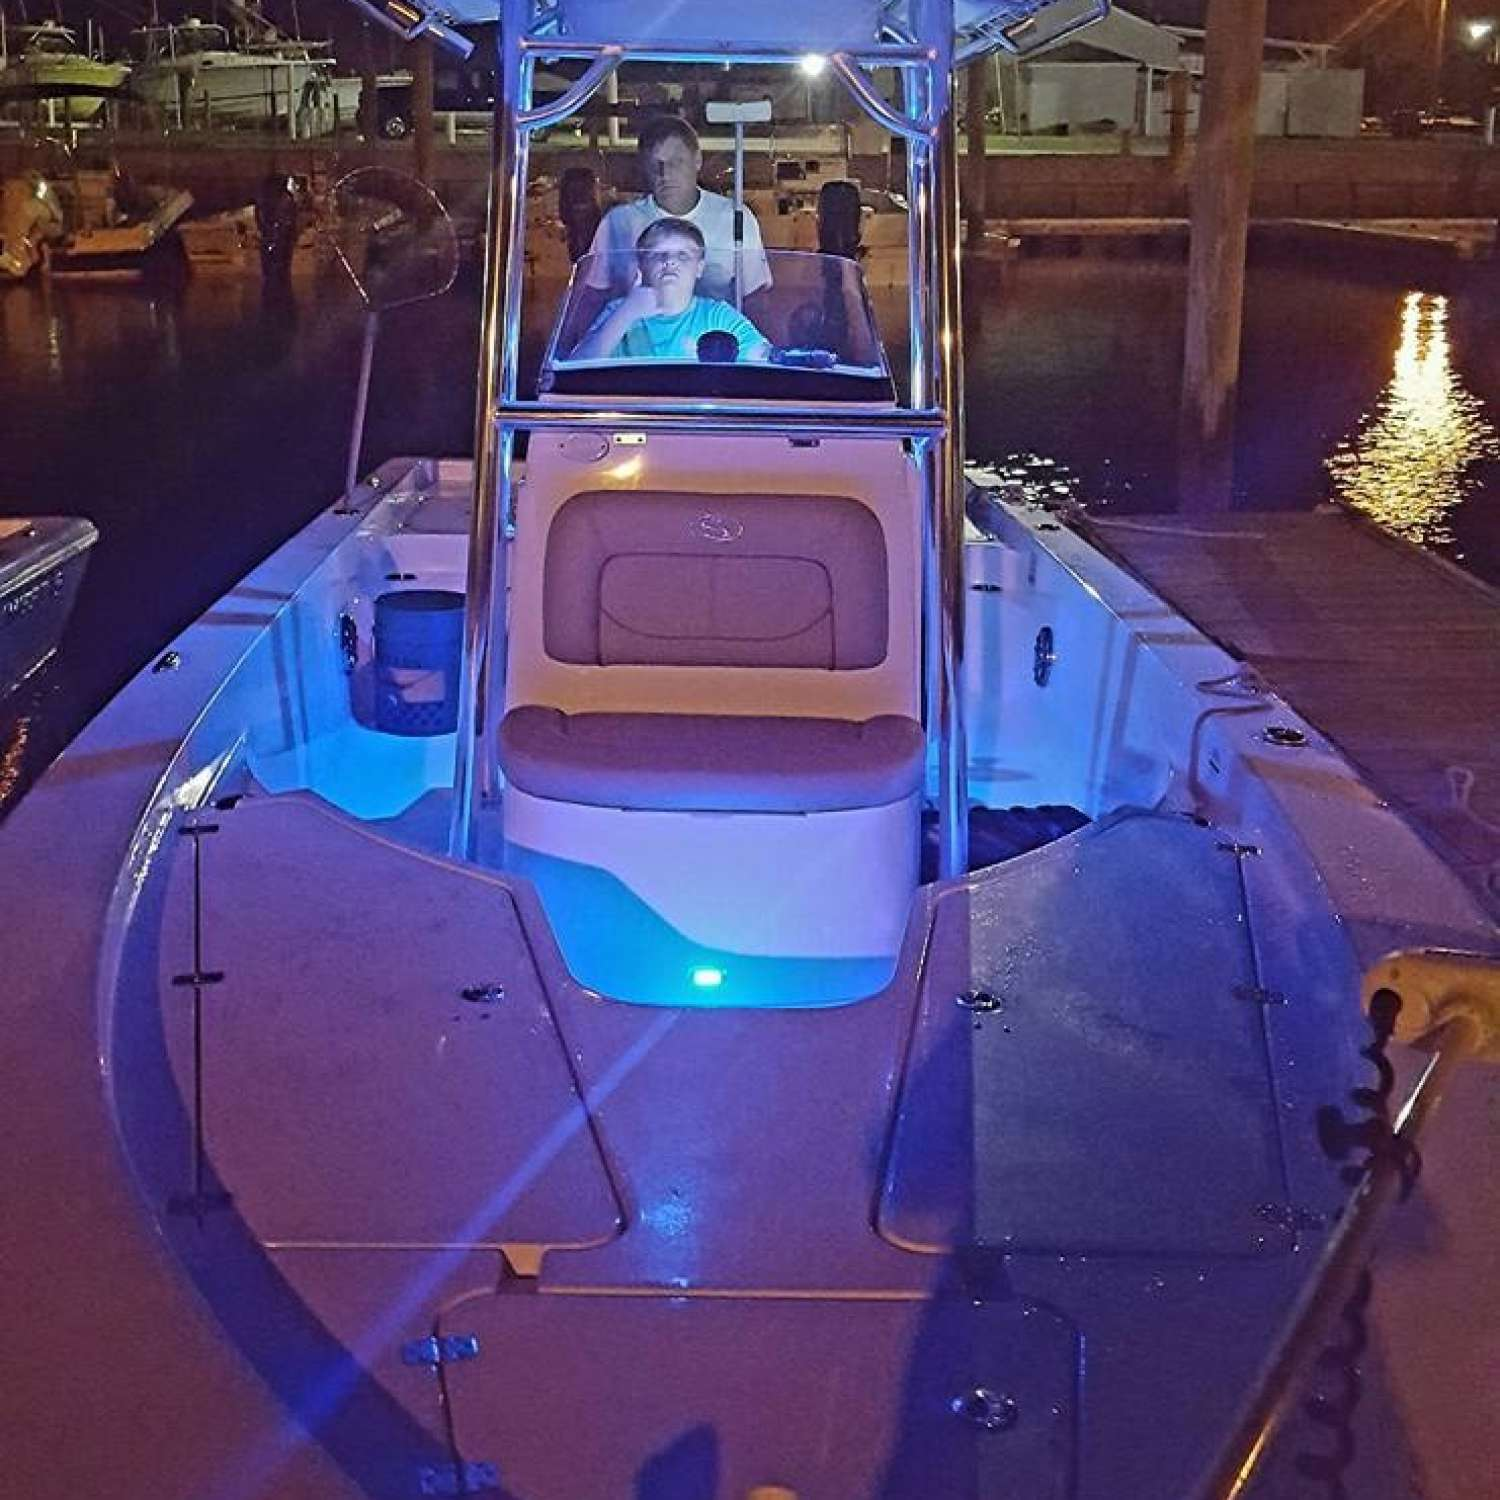 Title: Night Movies - On board their Sportsman Masters 227 Bay Boat - Location: Kenly, North Carolina. Participating in the Photo Contest #SportsmanAugust2016